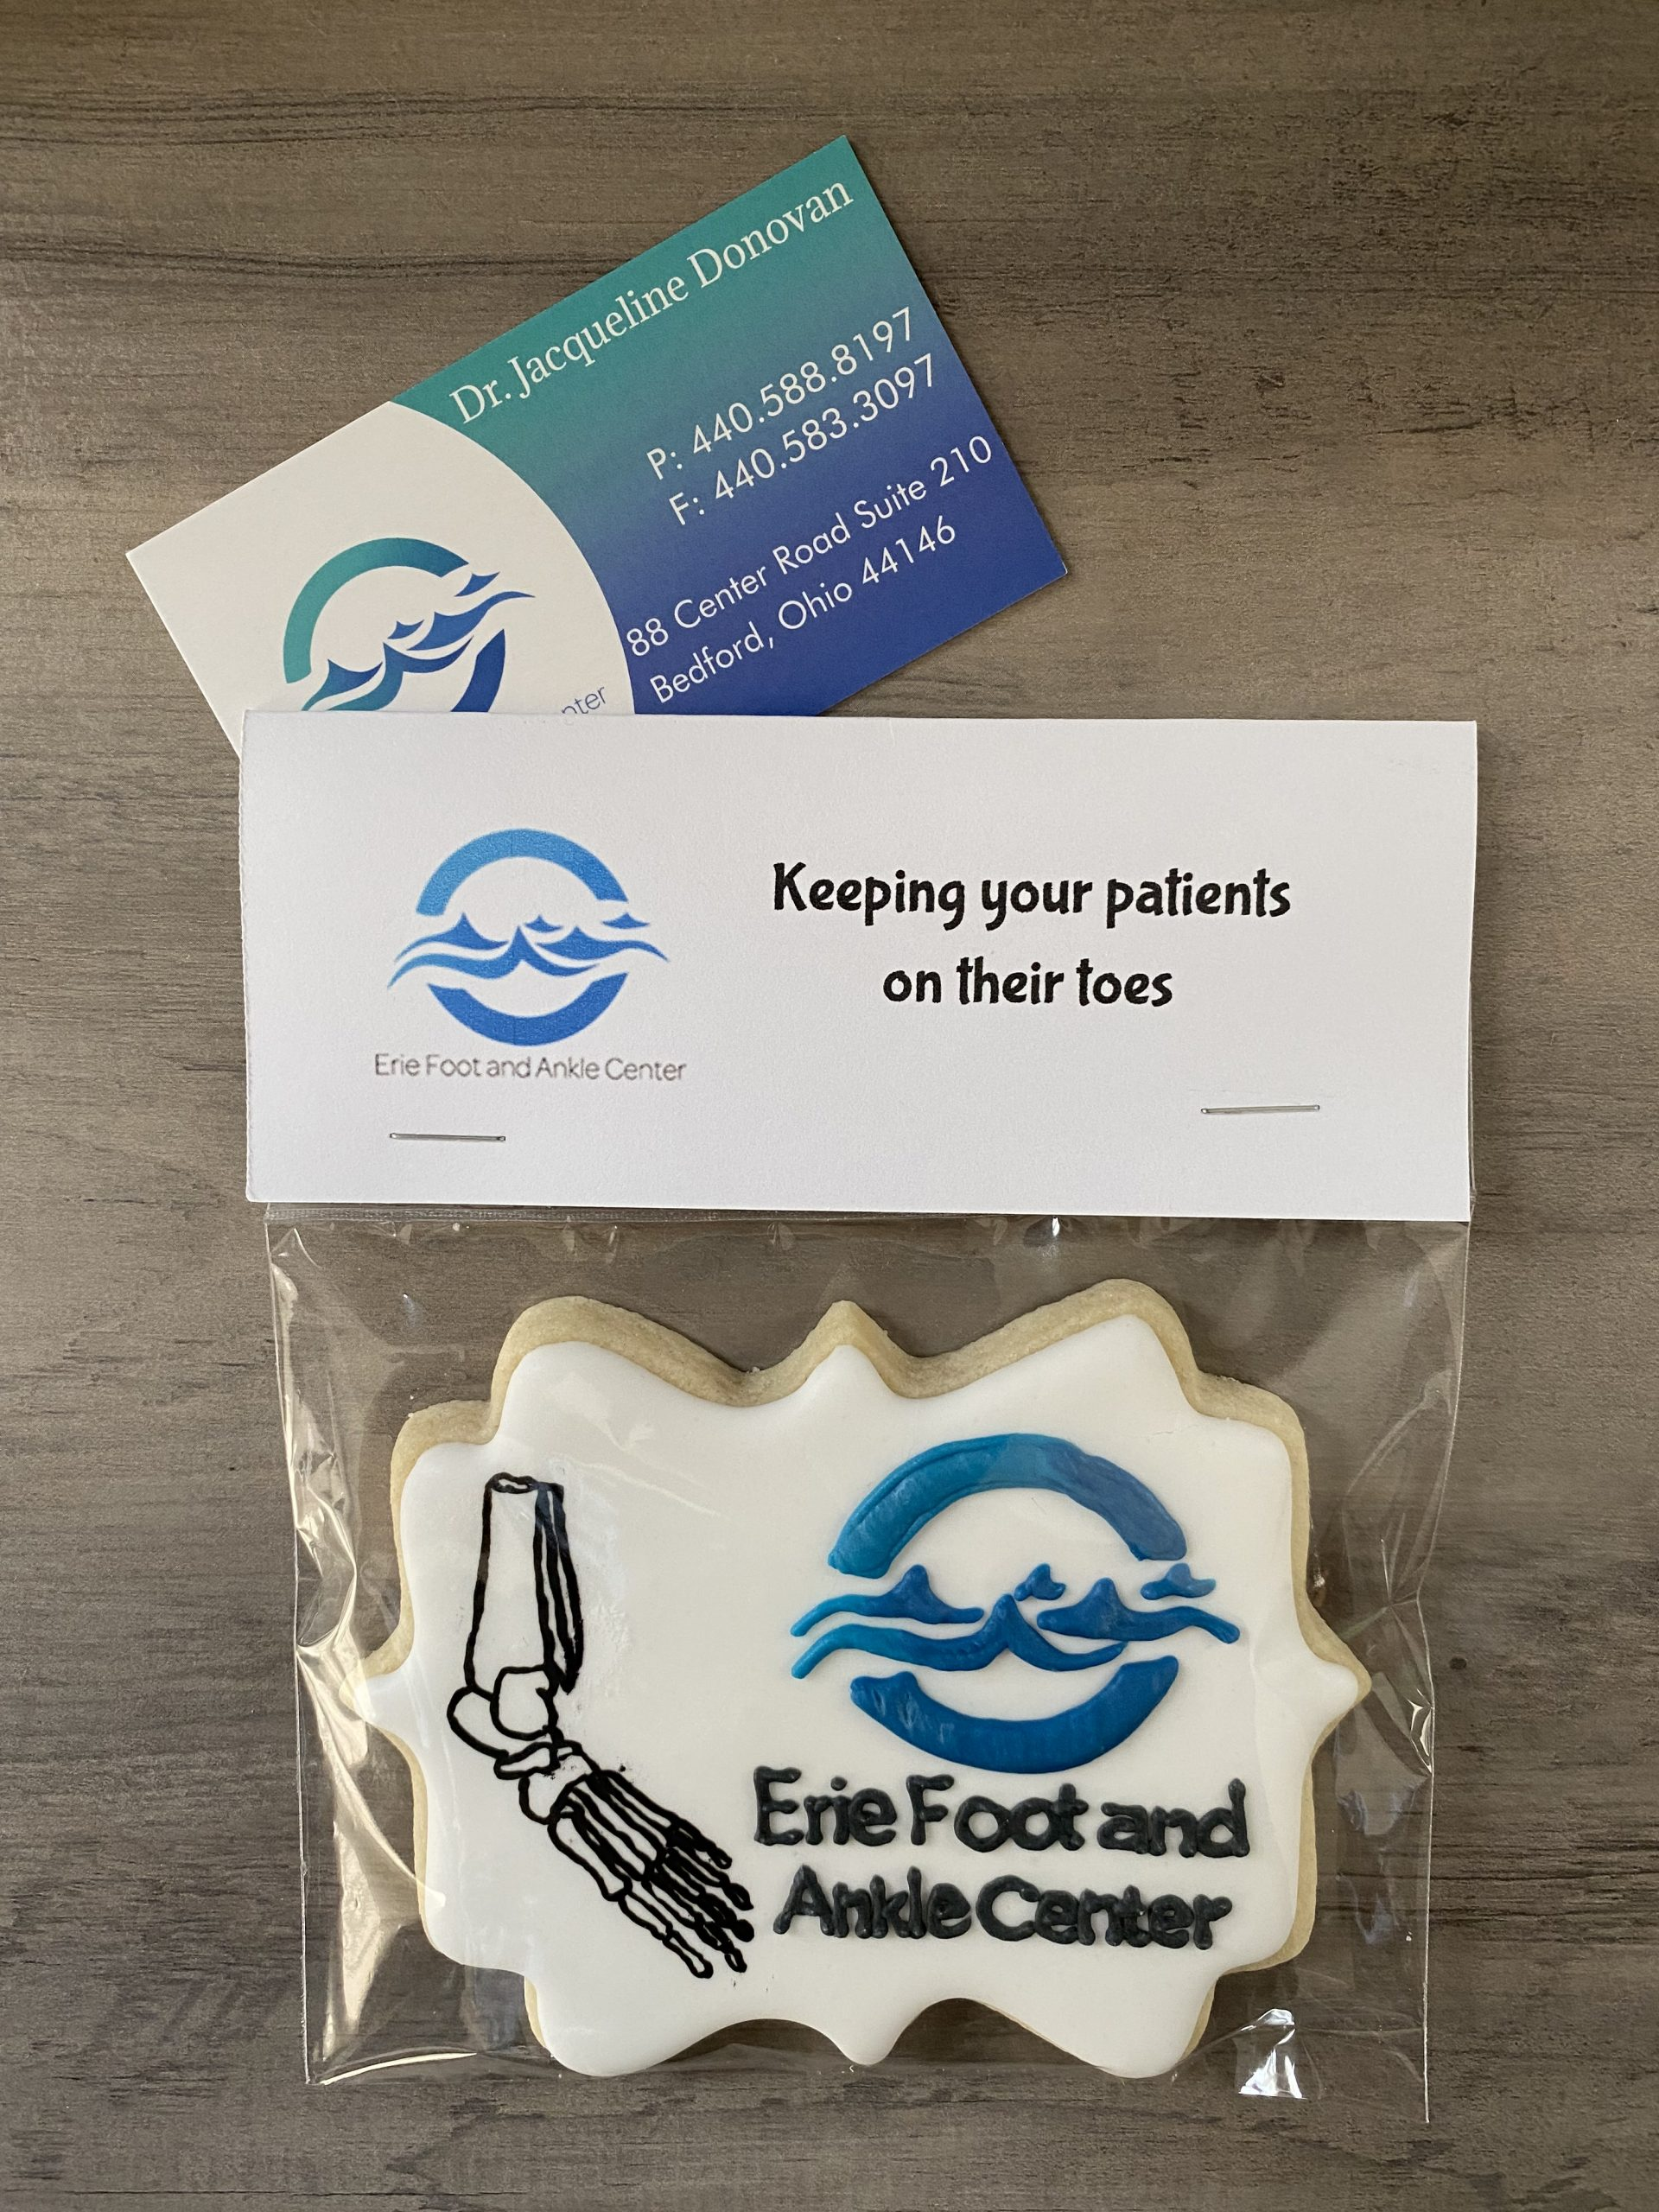 It was another great day delivering marketing info to Podiatrists for Erie Foot and Ankle Center. This Brand Ambassador was able to bring some smiles to some gloomy faces.